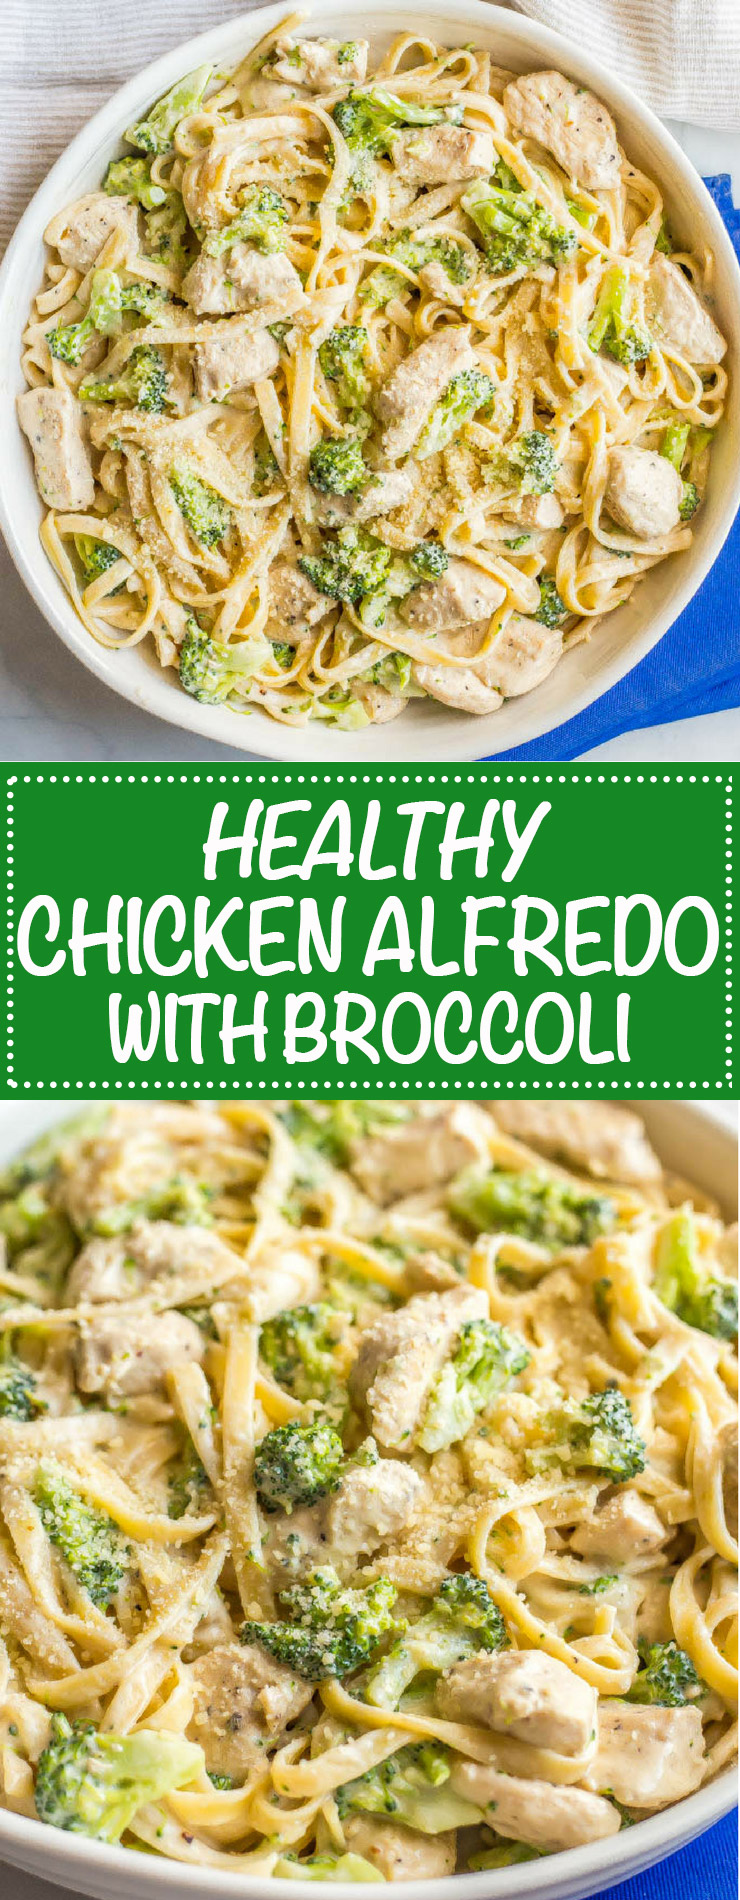 Healthy chicken Alfredo with broccoli is a quick and easy dinner with a lightened up but delicious creamy sauce coating every bite. Sure to be a new family favorite recipe! #easychickenrecipe #chickendinner #chickenpasta   www.familyfoodonthetable.com